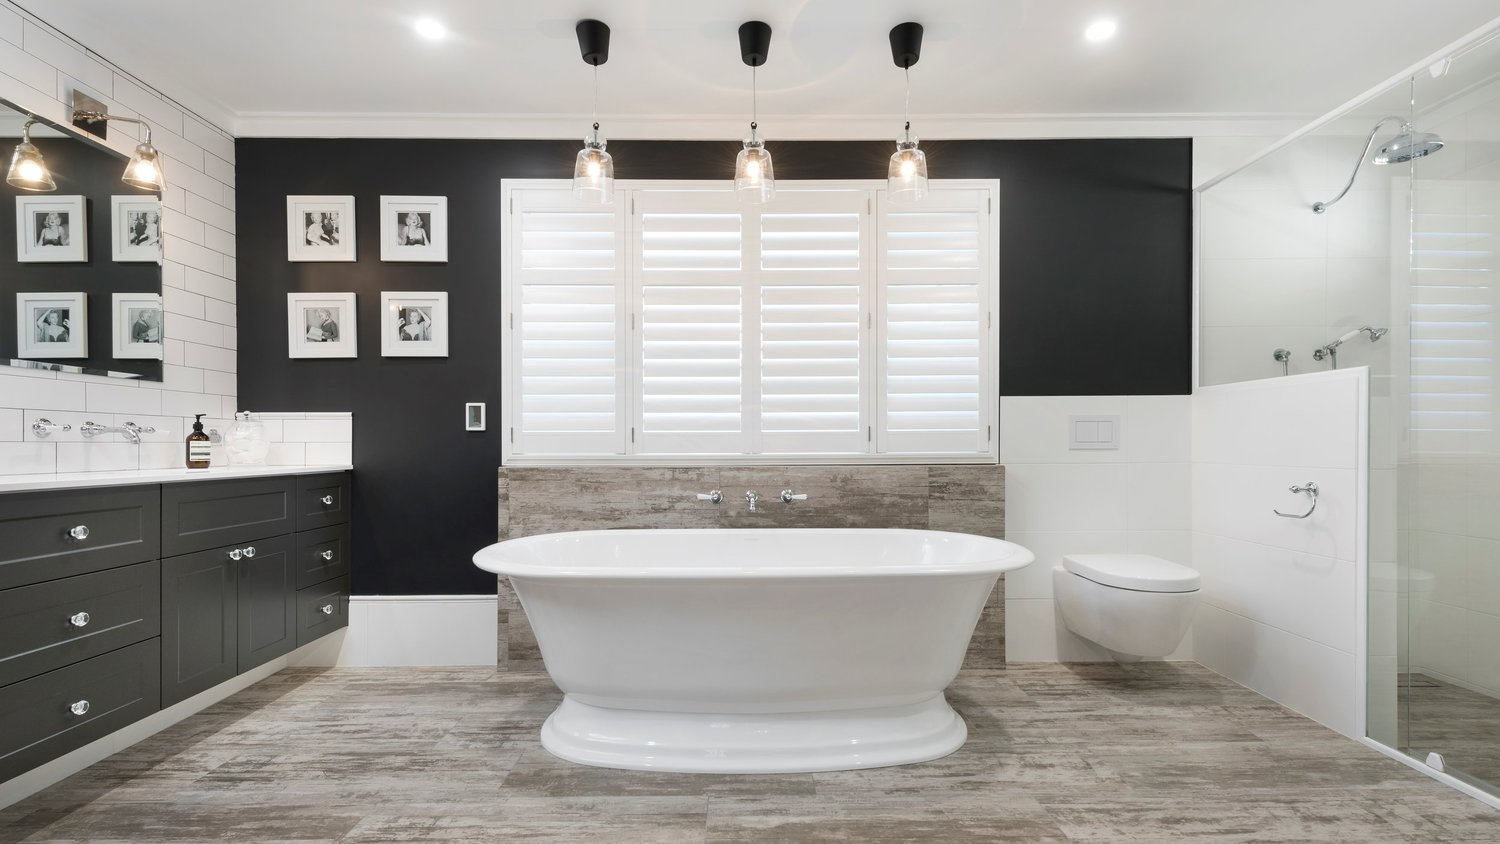 Hamptons Style Decor for Bathrooms and Kitchens — Lavare Bathrooms + ...